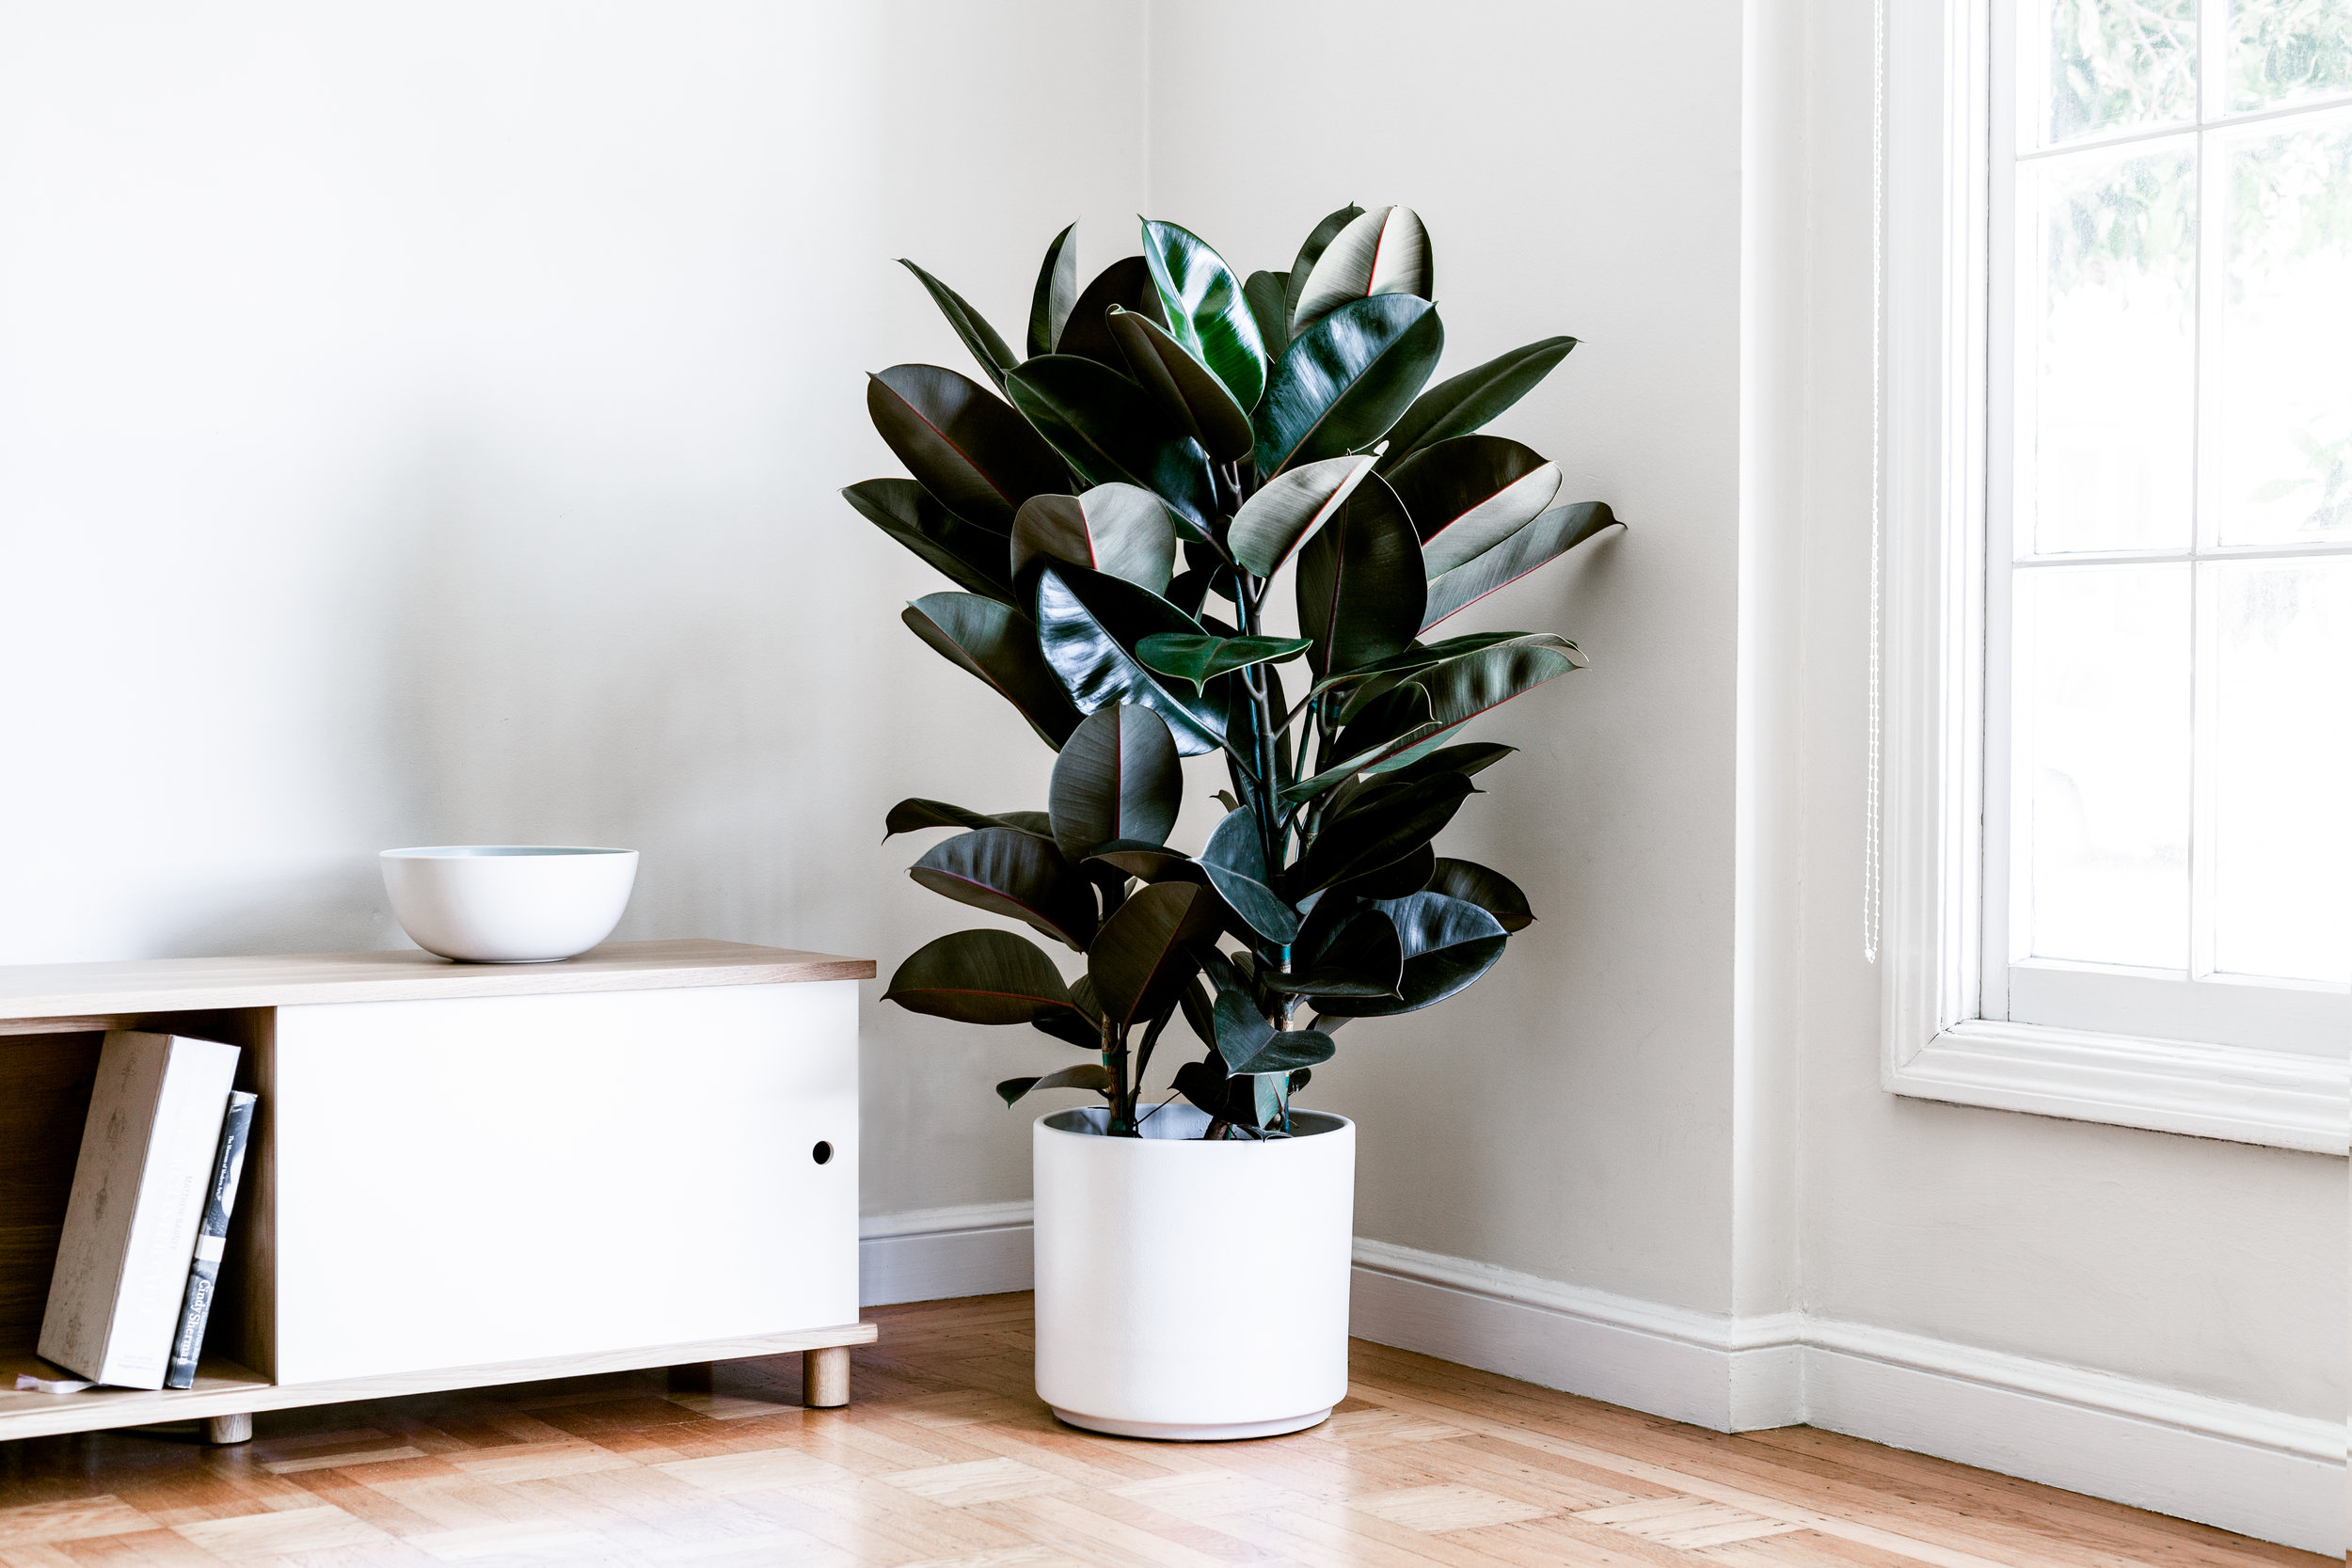 Rubber tree - With its burgundy-colored leaves, this plant makes a unique option for any indoor space. Grows quickly in ideal conditions and is easy to care for. Crimson casings of new leaves adds a pop of color and is the perfect statement piece for budding plant parents.3-4ft tall with ceramic pot: $299